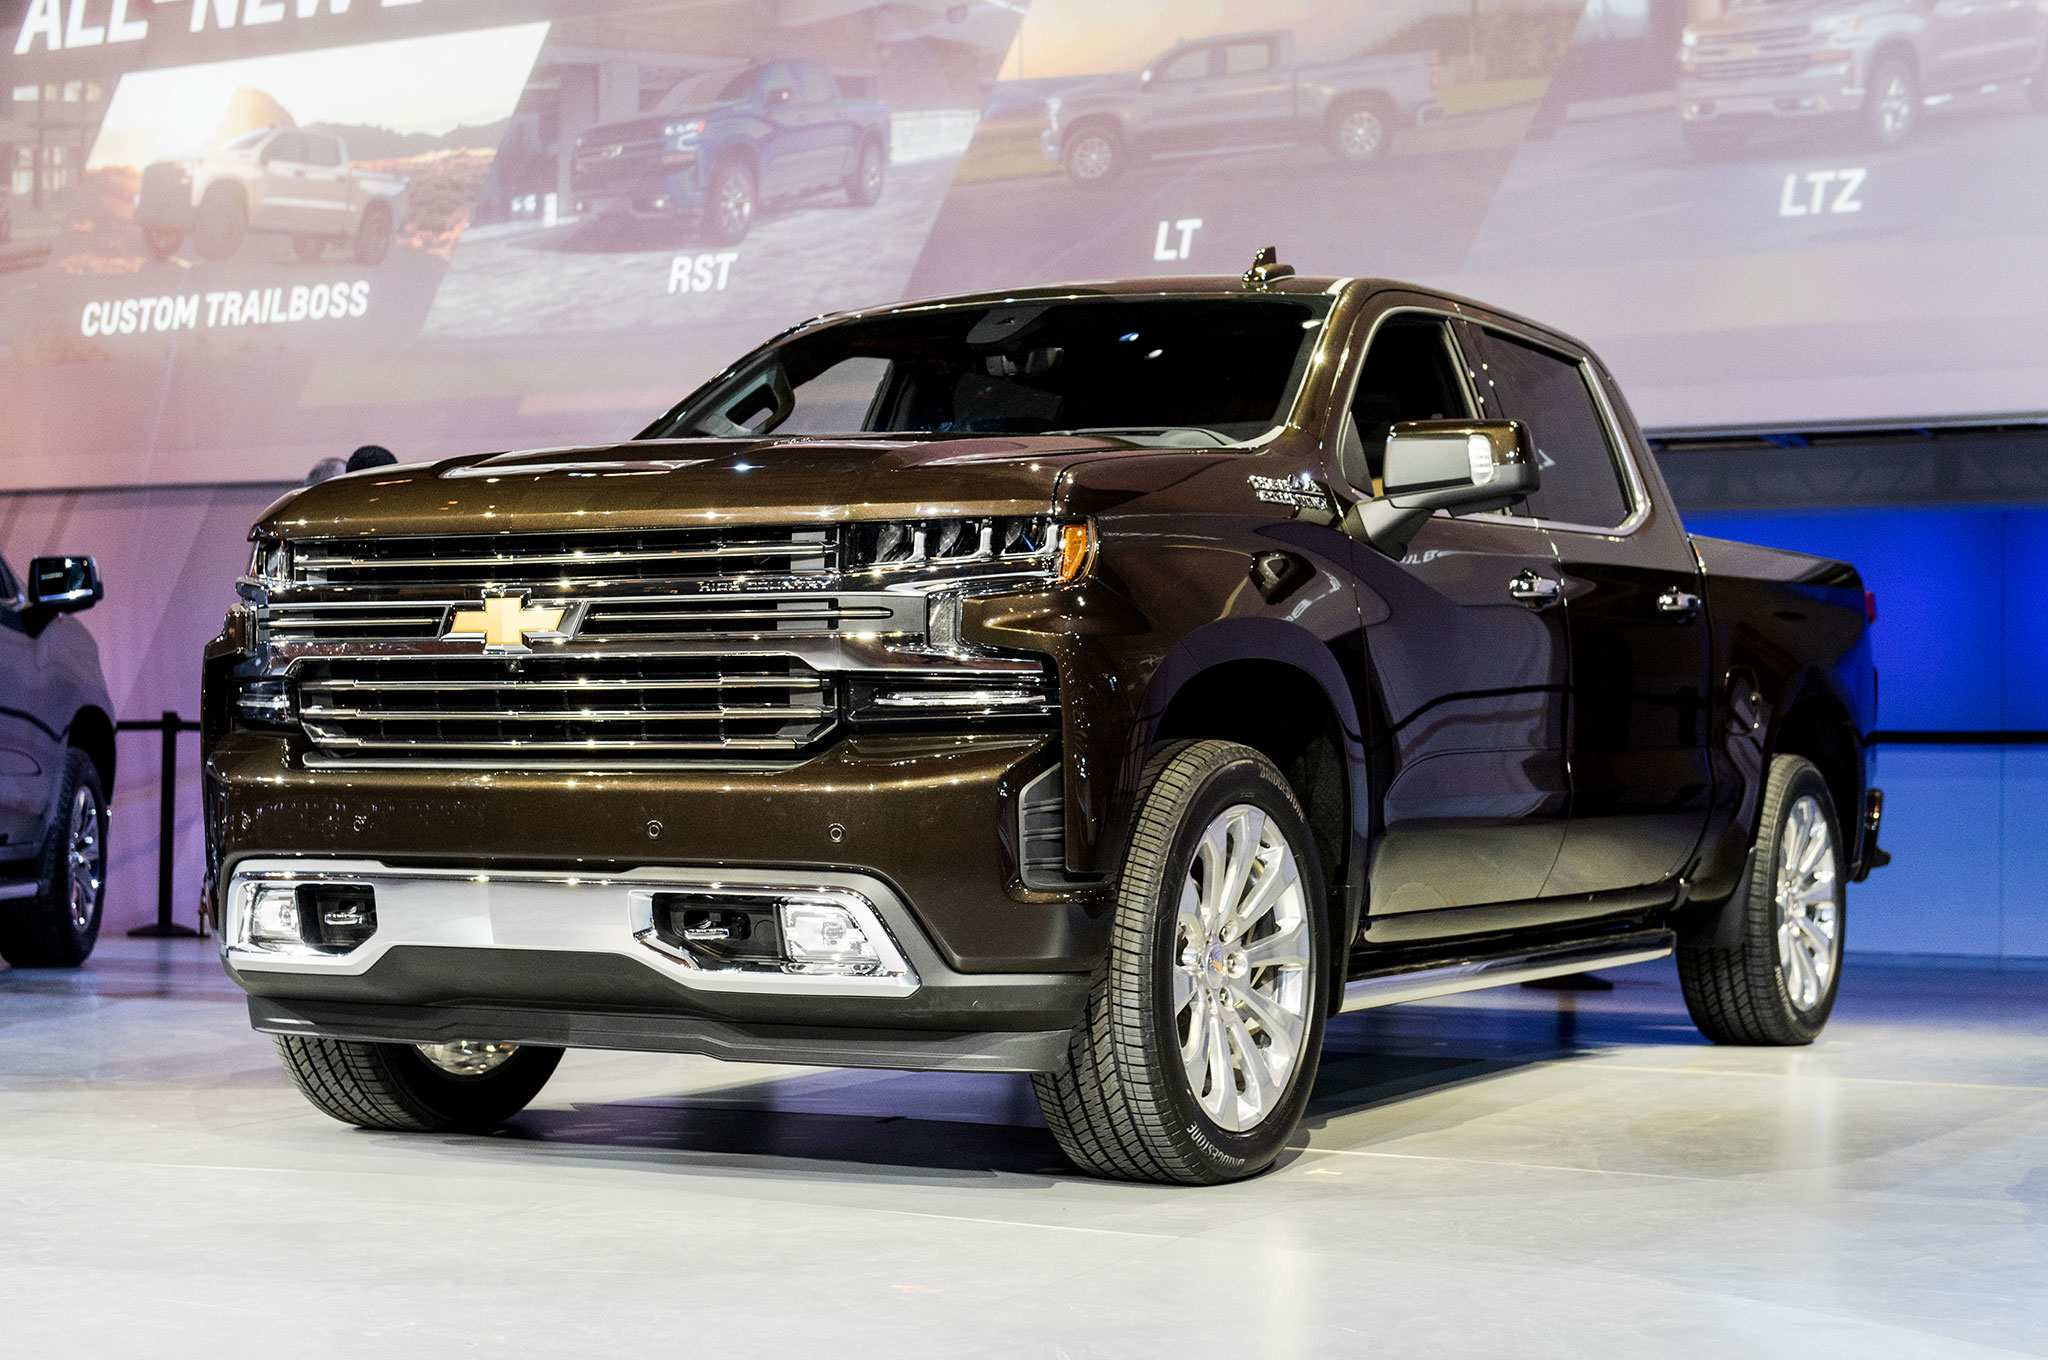 57 New 2019 Chevrolet Silverado Diesel Redesign and Concept with 2019 Chevrolet Silverado Diesel